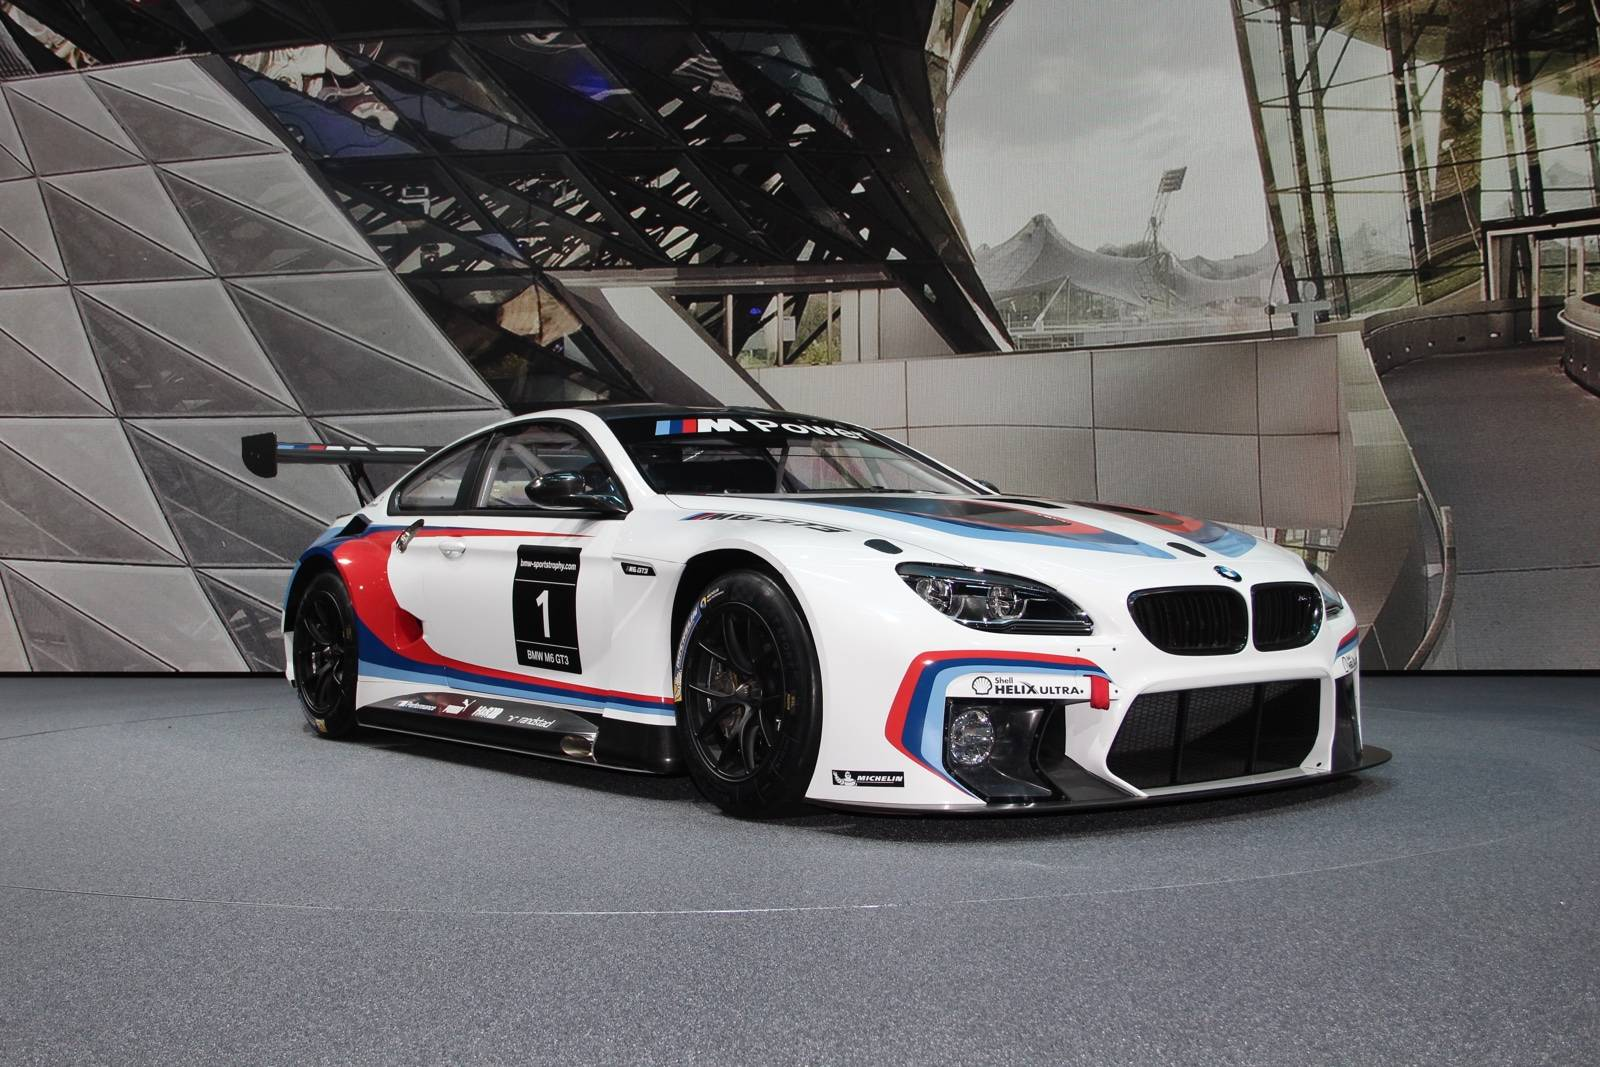 Bmw Z4 Gt3 Top Speed 2010 Bmw Z4 Gt3 Car Review Top